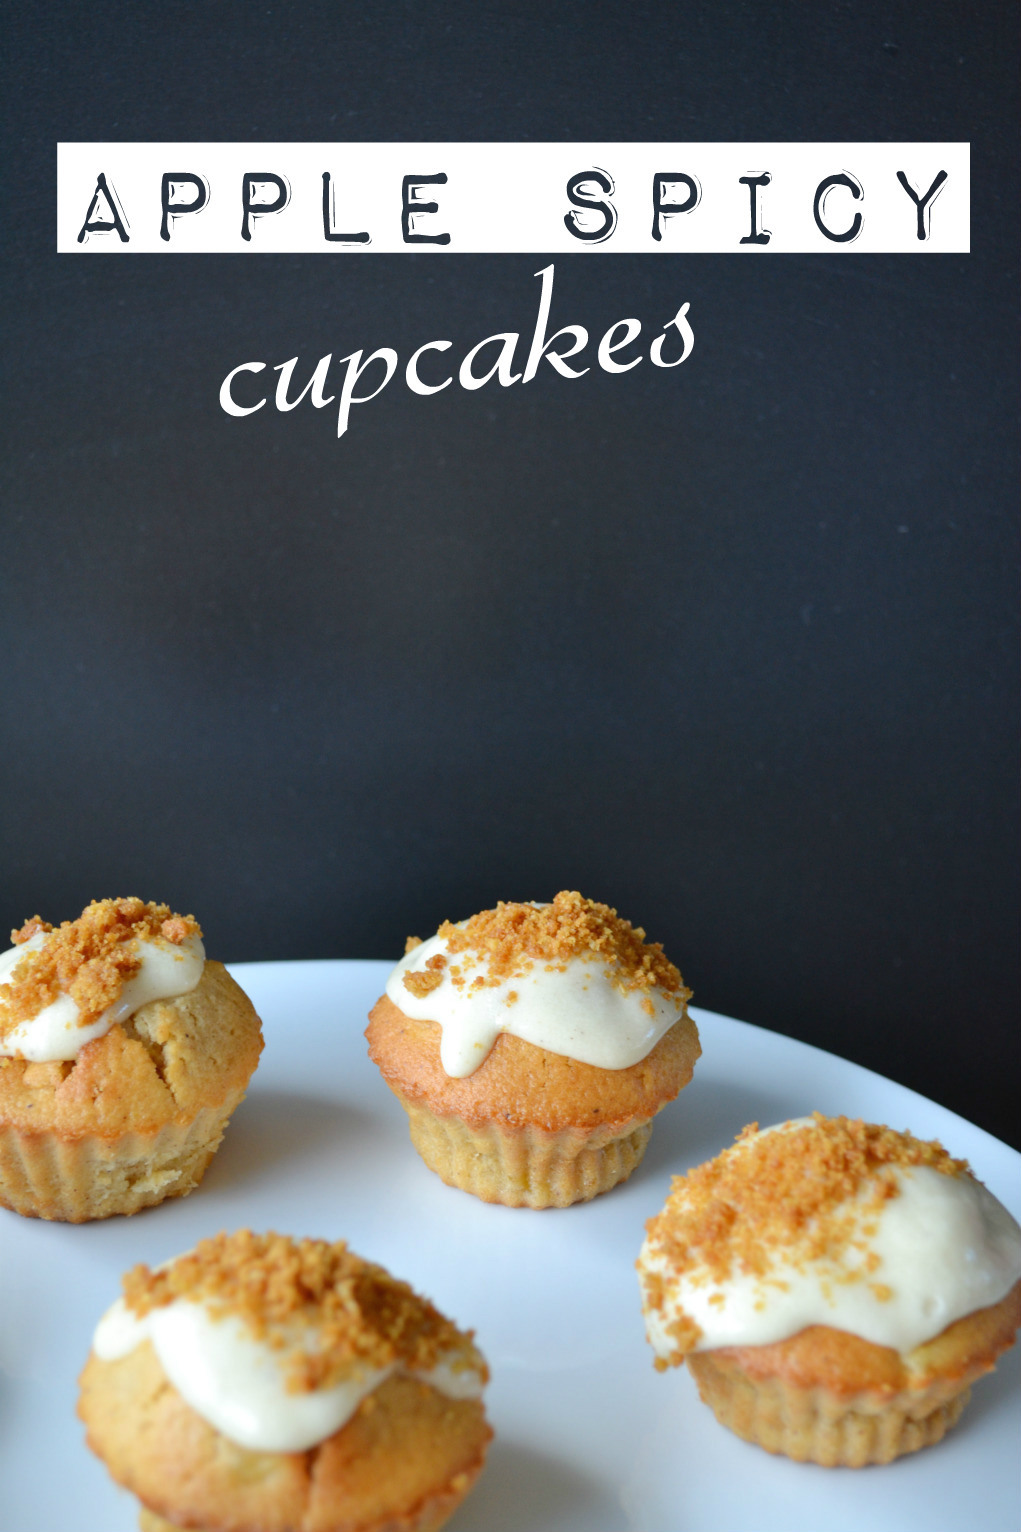 apple spicy cupcakes letters DSC_0040